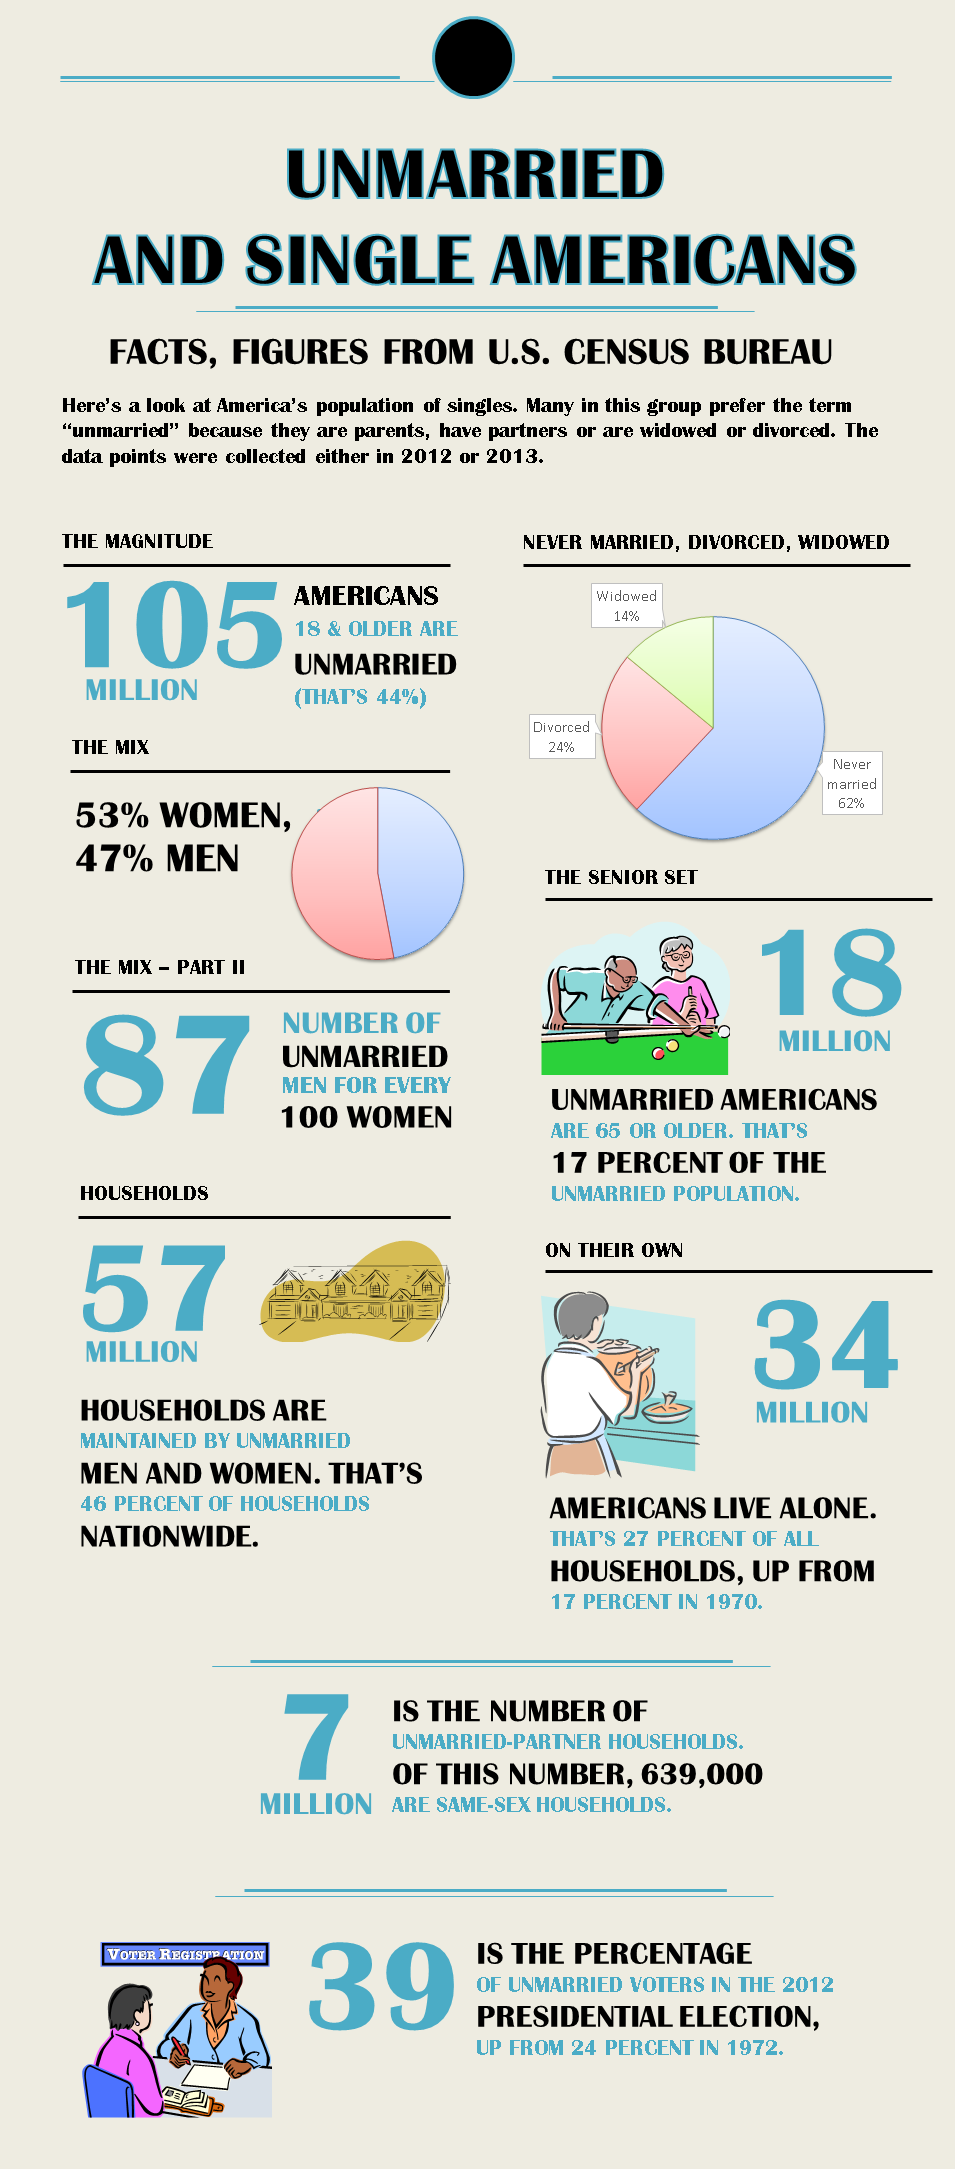 Unmarried and single Americans